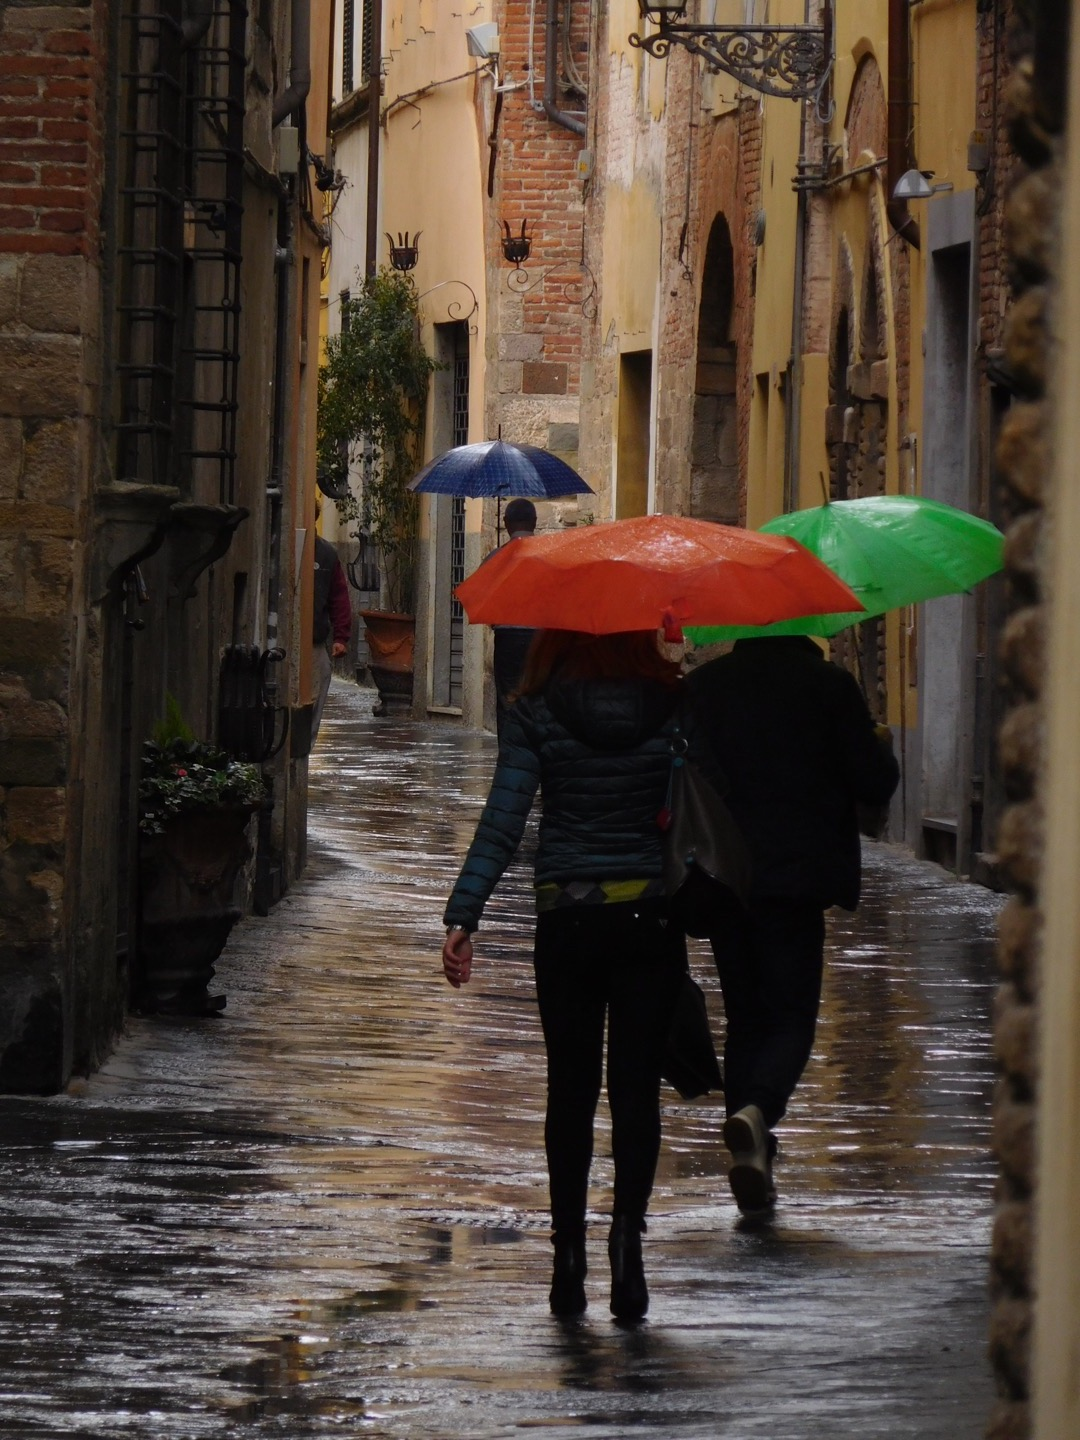 Rainy days bring out lots of color as umbrellas brighten the dark skies.